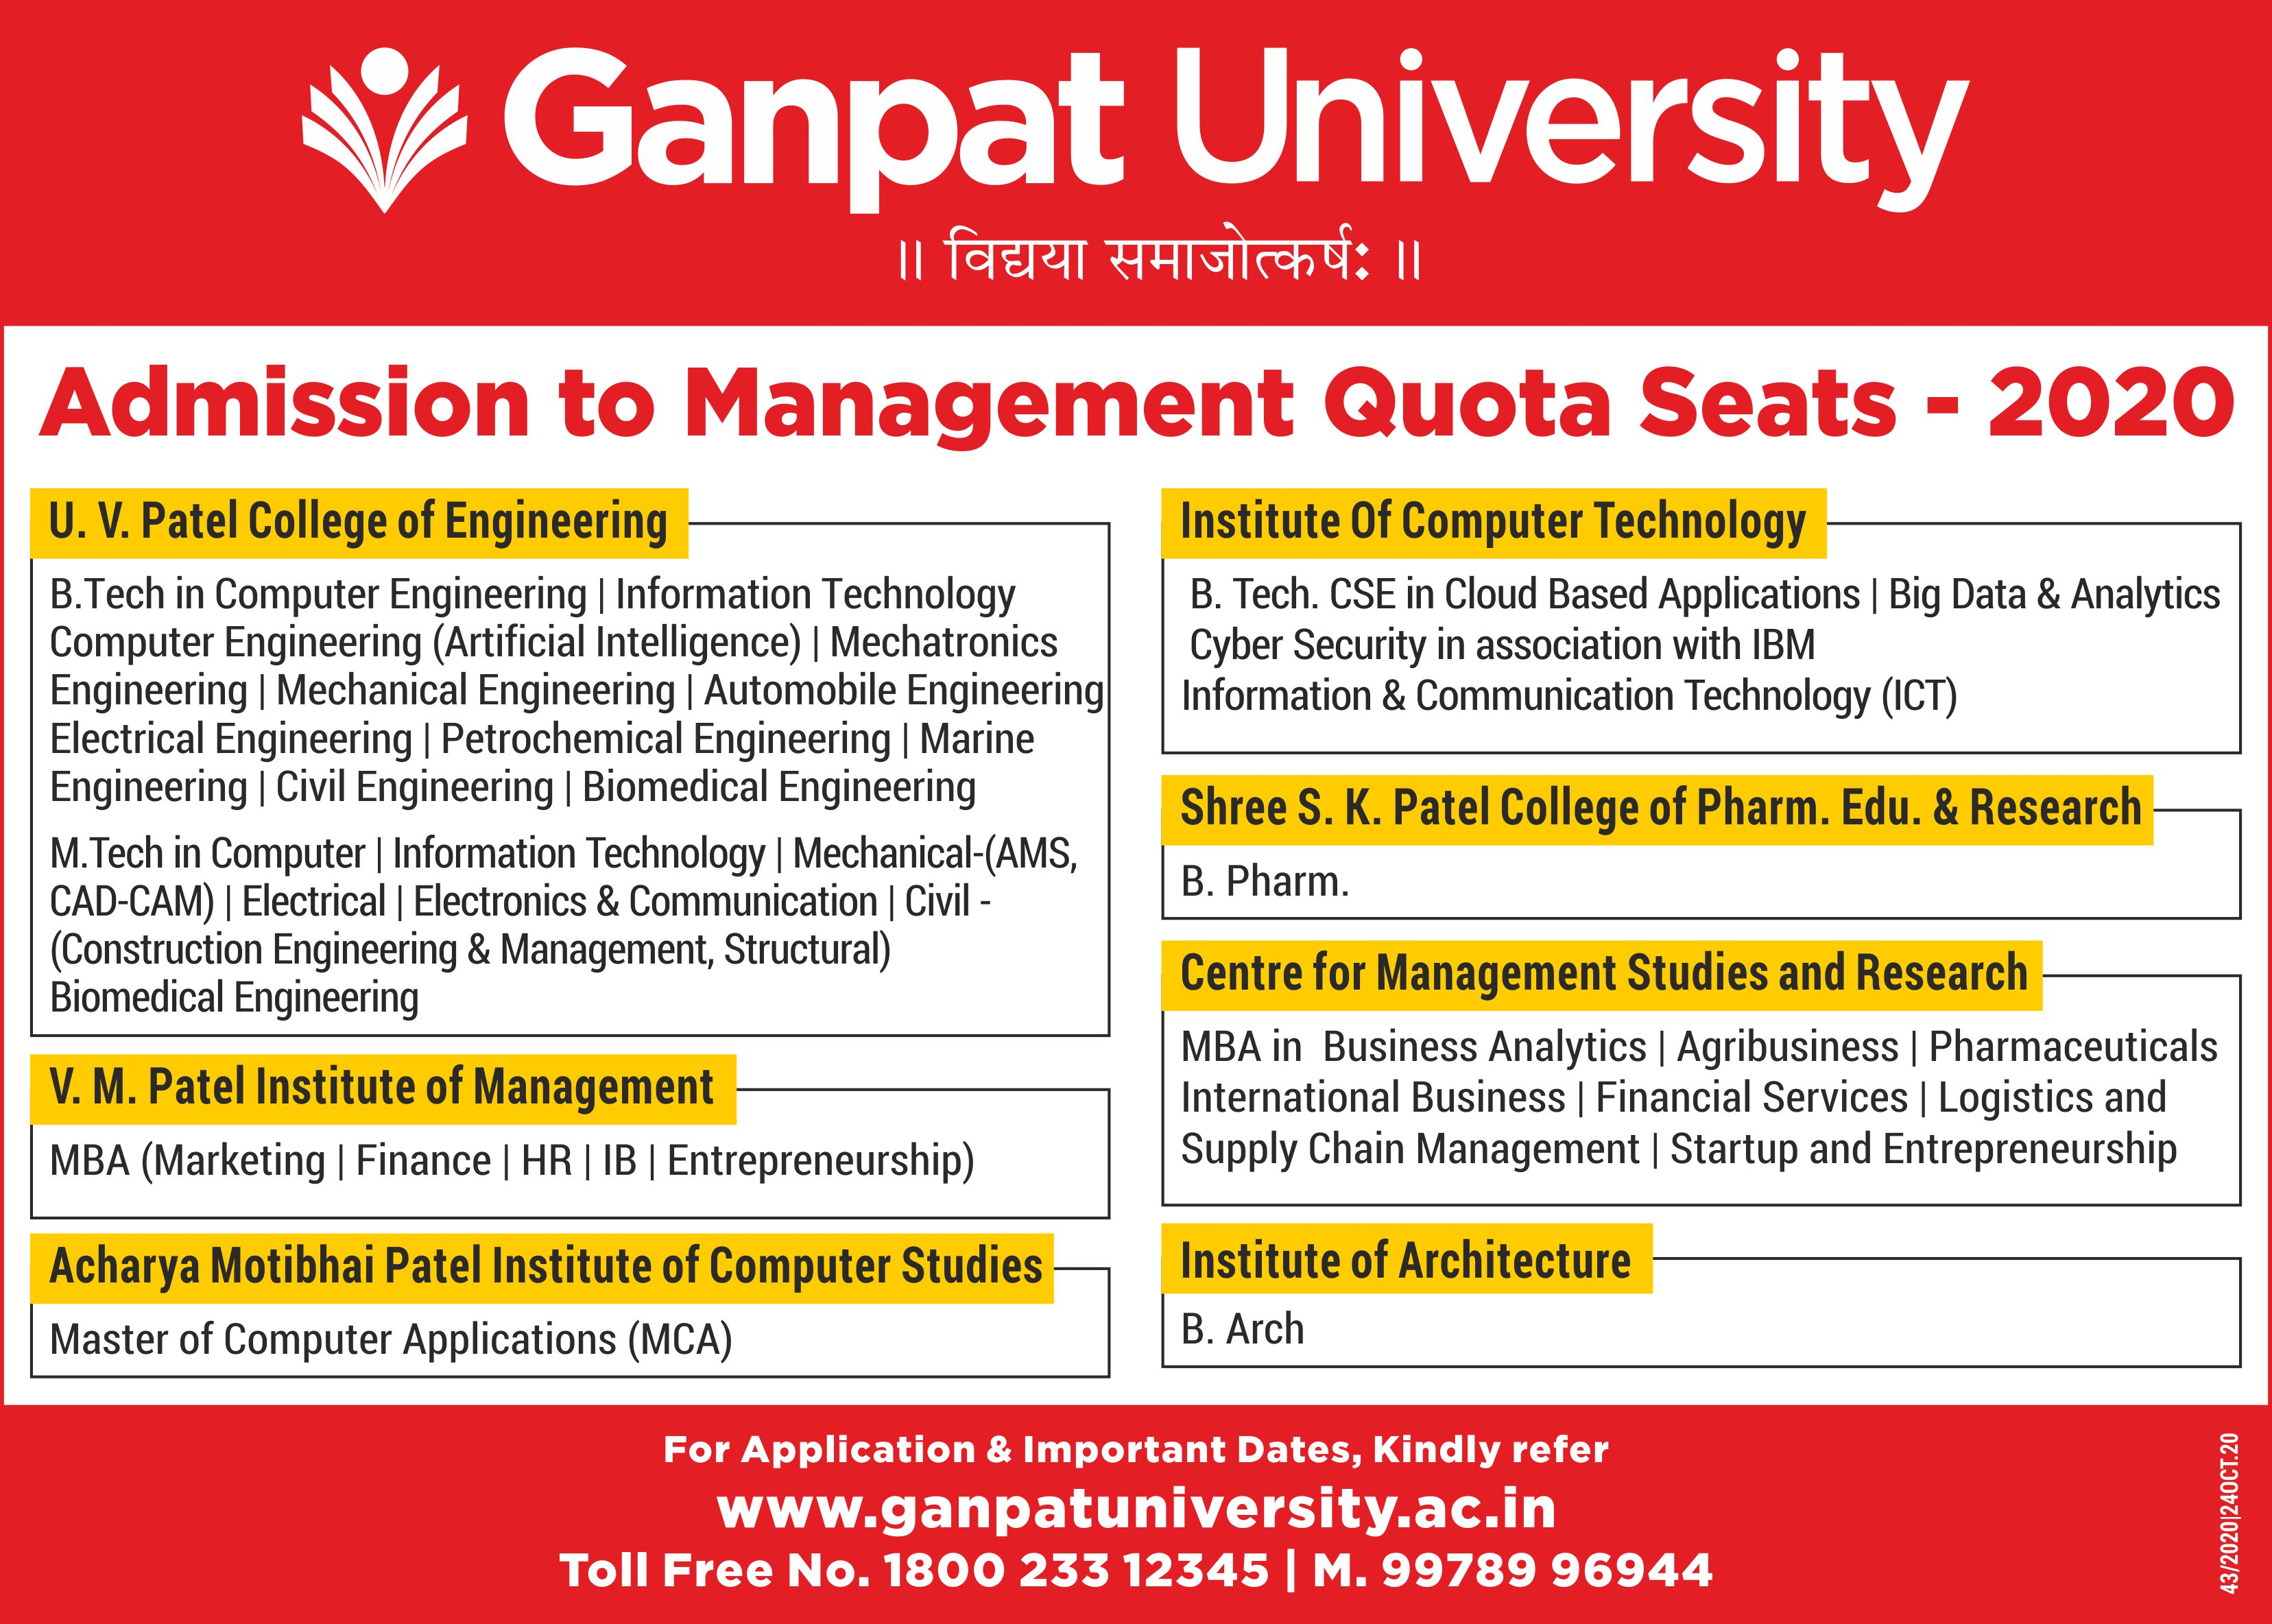 Admission to Management Quota Seats - 2020